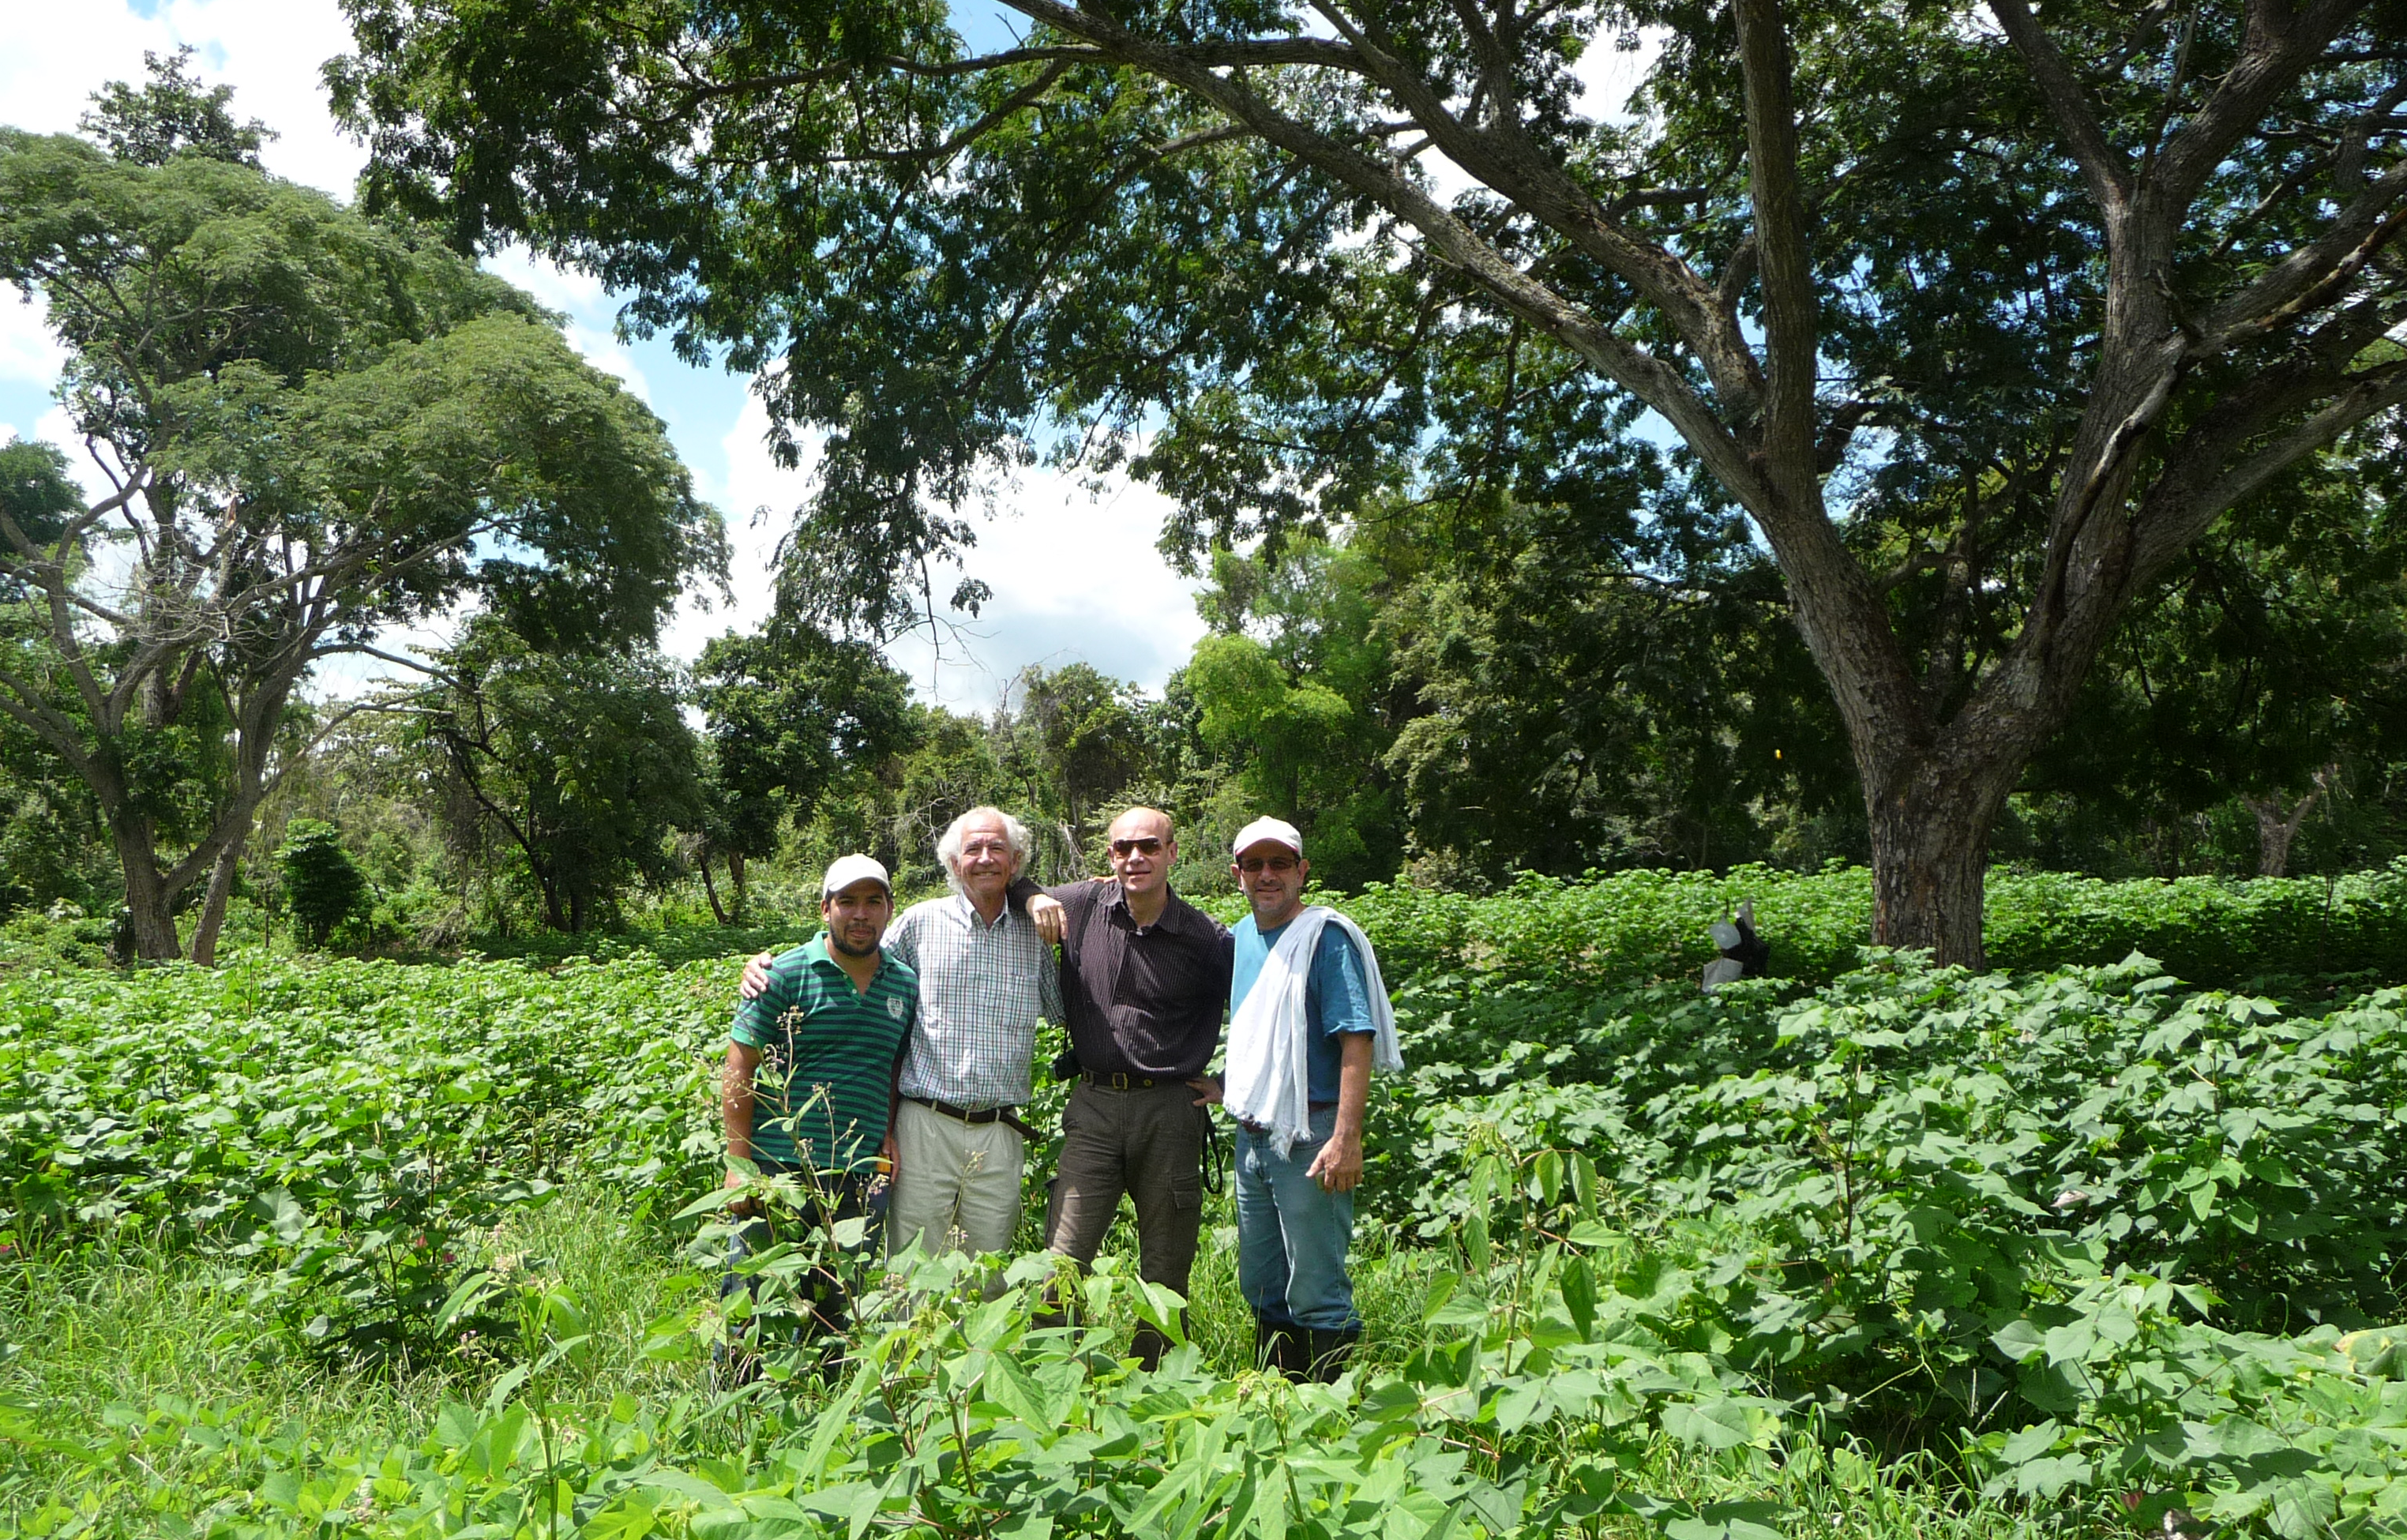 Visiting PTP organic cotton cropping tests with Jens Soth, Helvetas, Alvarado, Colombia 2013